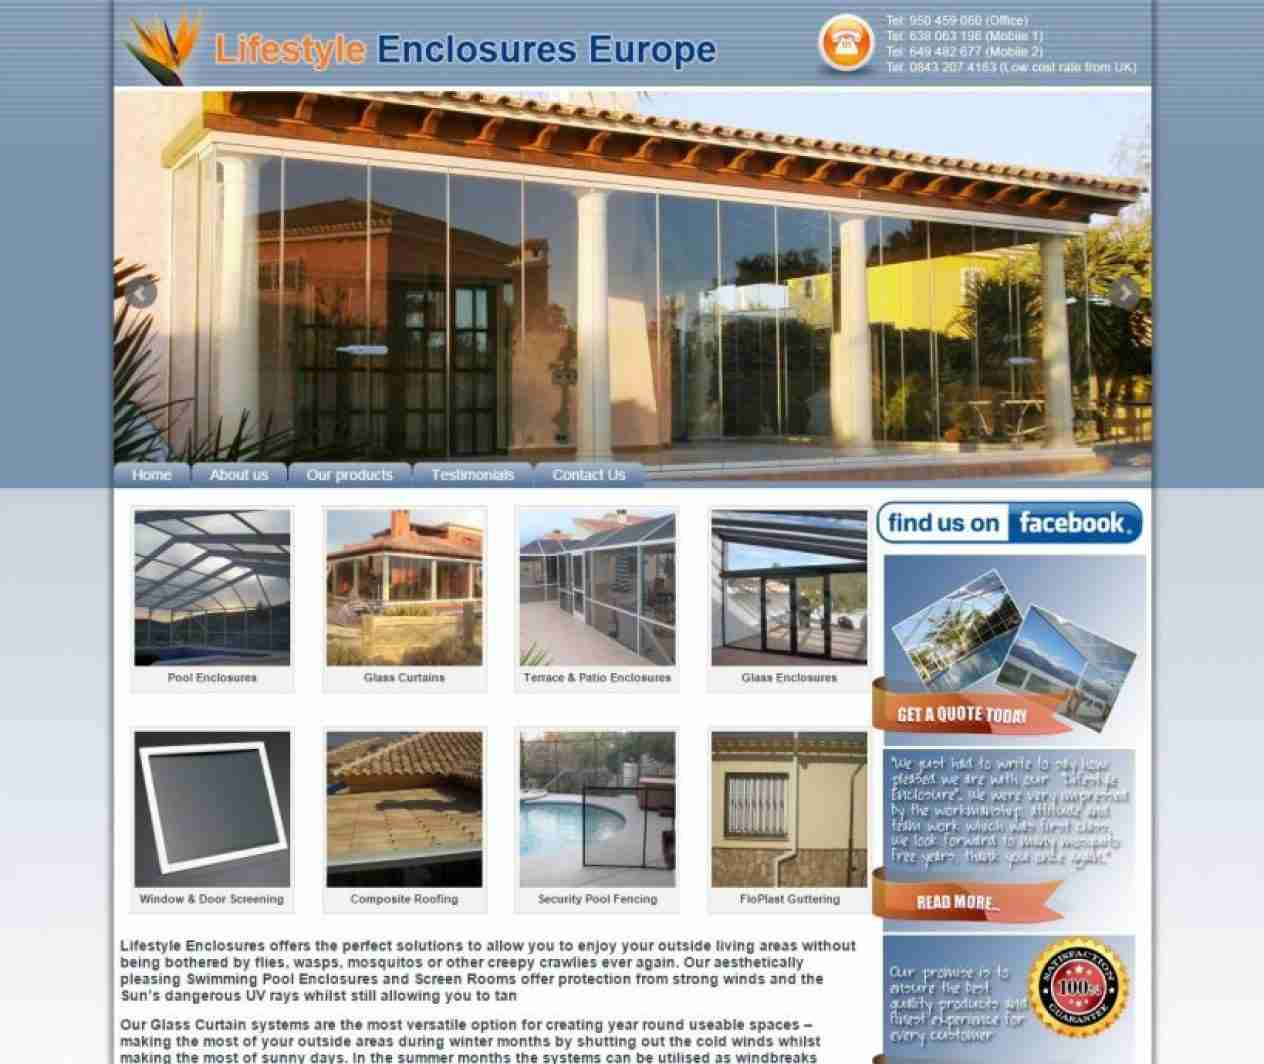 Lifestyle Enclosures Europe